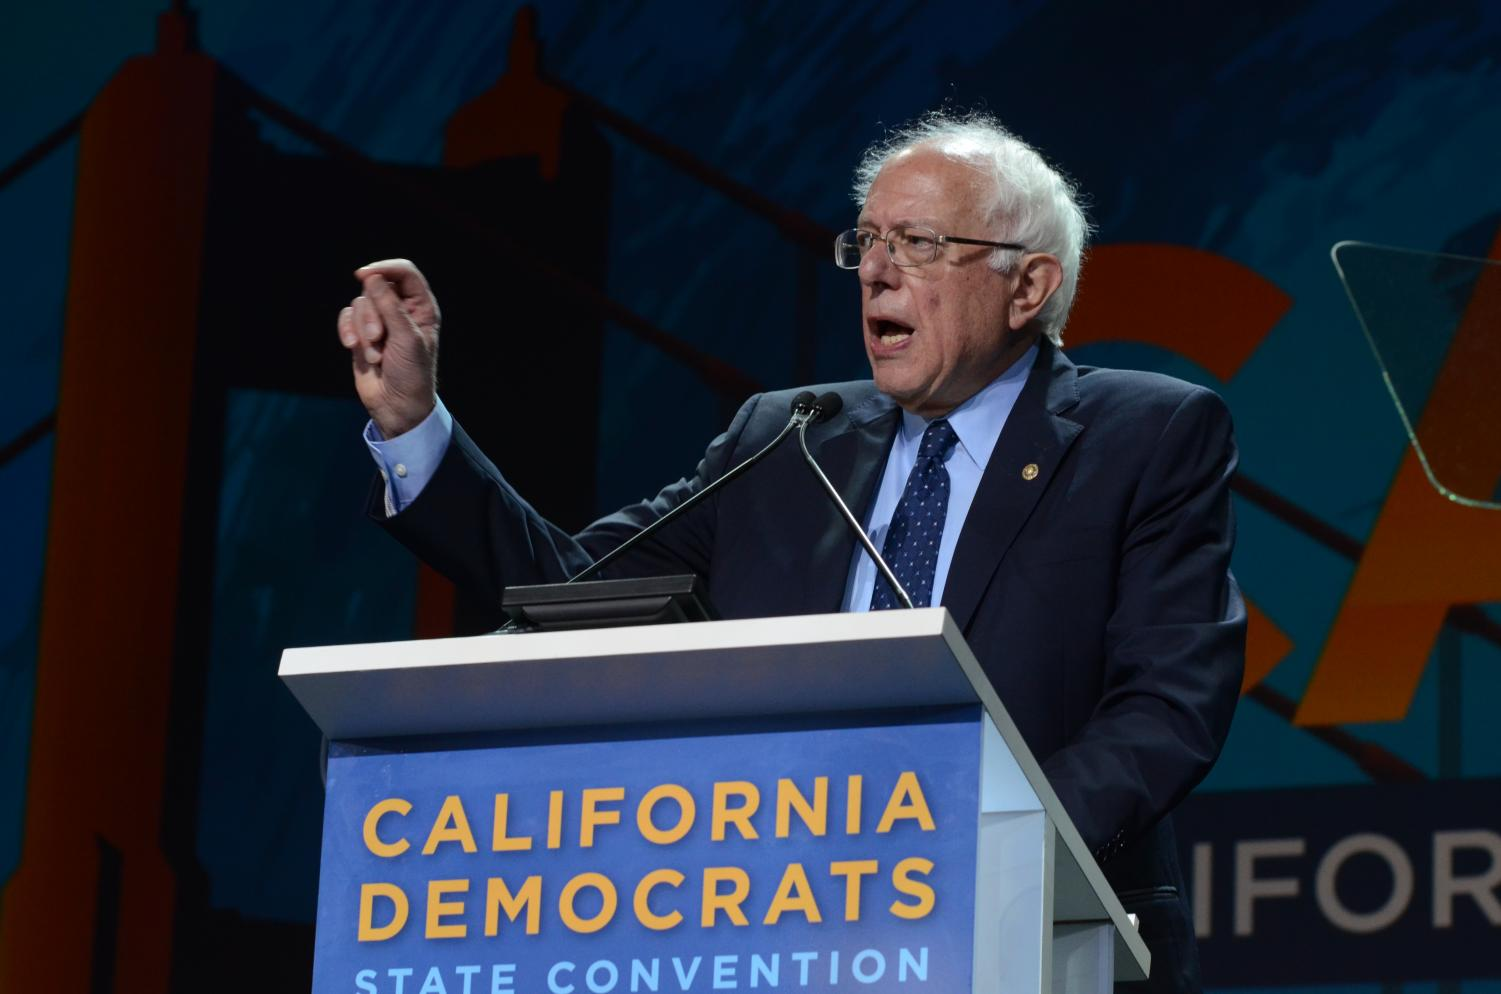 Presidential Hopeful Bernie Sanders raises concerns about economic injustices. He pledged to combat large corporations if elected president.